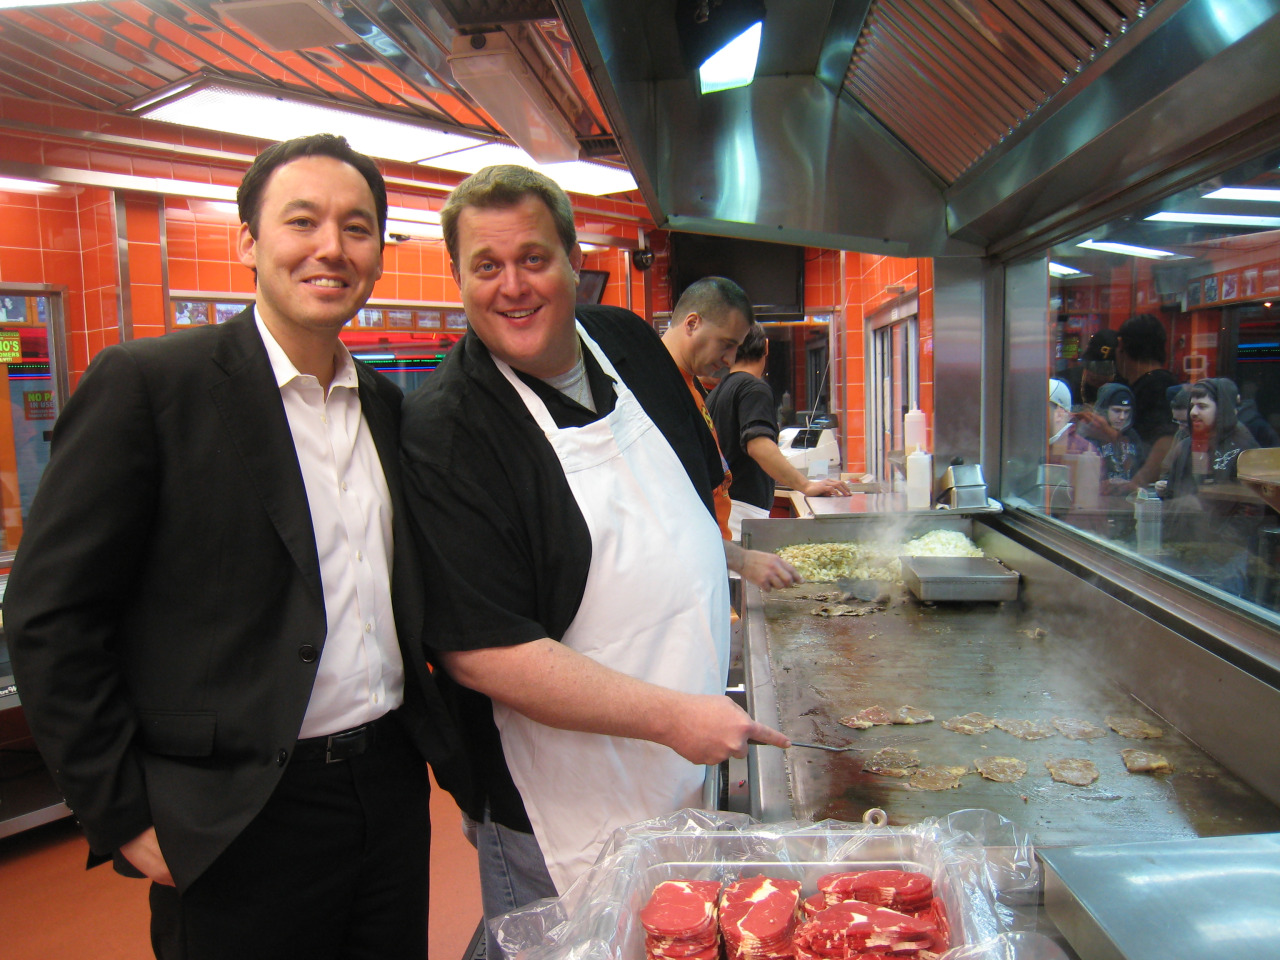 Steve Bryne and Billy Gardell at Geno's Steaks